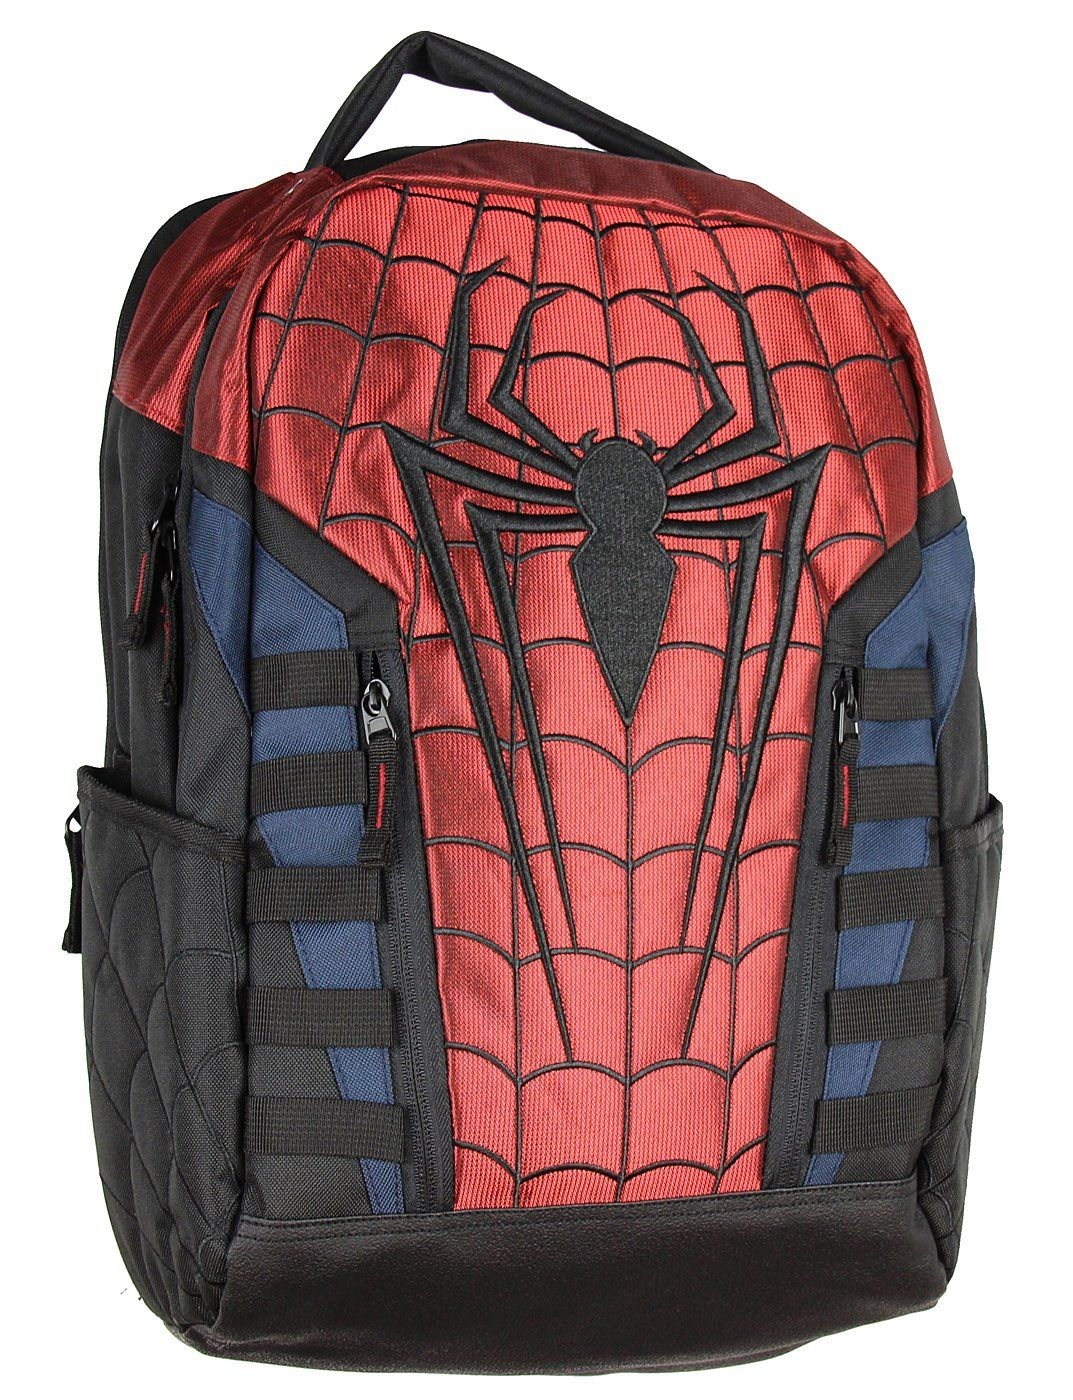 394a793894d5 Marvel Spiderman Logo Backpack. Officially licensed Spider-man merchandise.  TSA friendly padded laptop